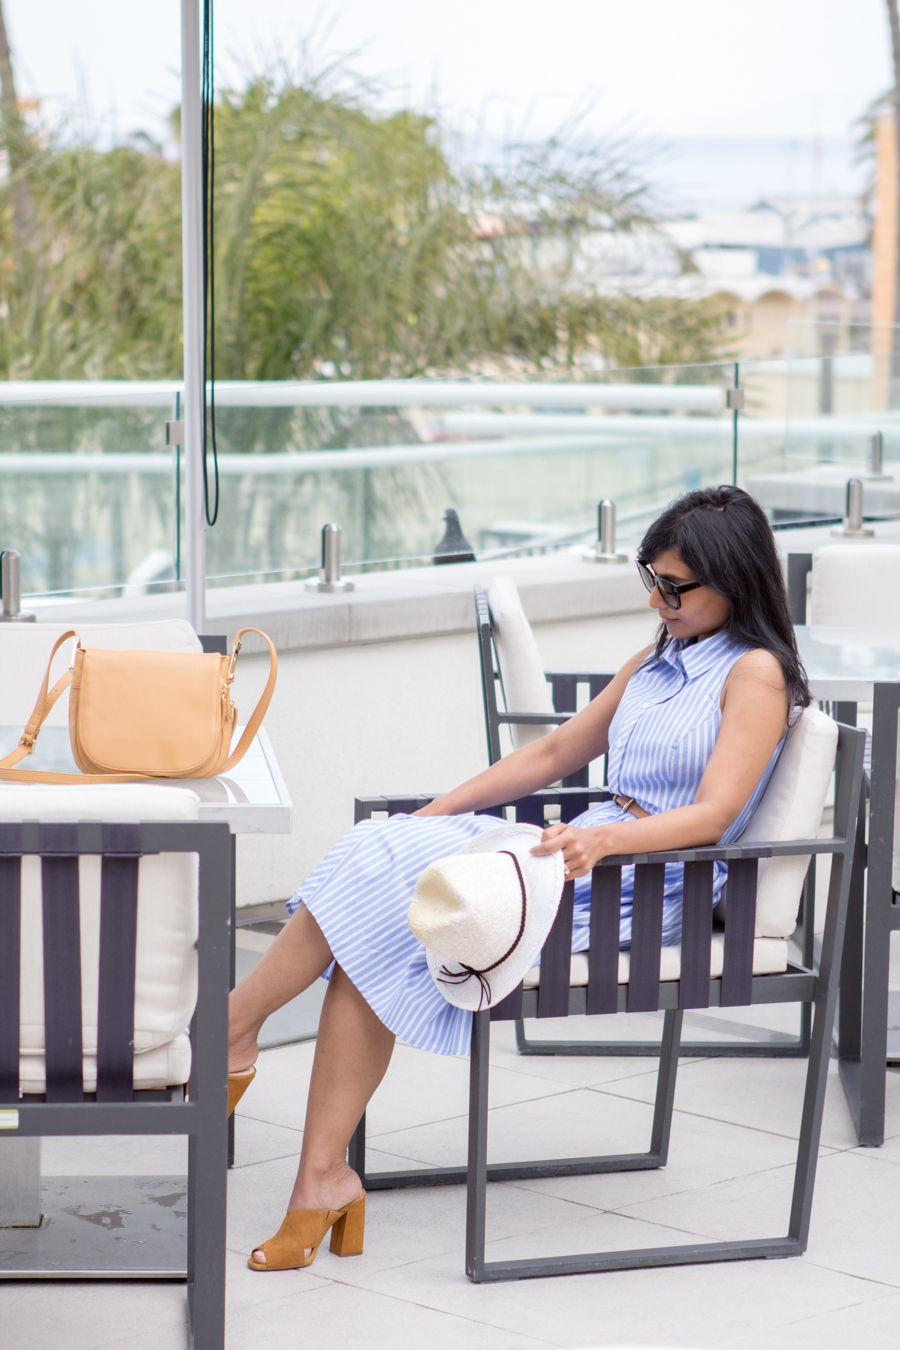 vacation wear, holiday dressing, poolside with cocktails, relaxed dressing, chic dress, belted dress, shirtdress, panama hat, express runway, pearl earrings, stella mccartney, square sunglasses, relaxing by the pool, mules, mustard slides, vince camuto